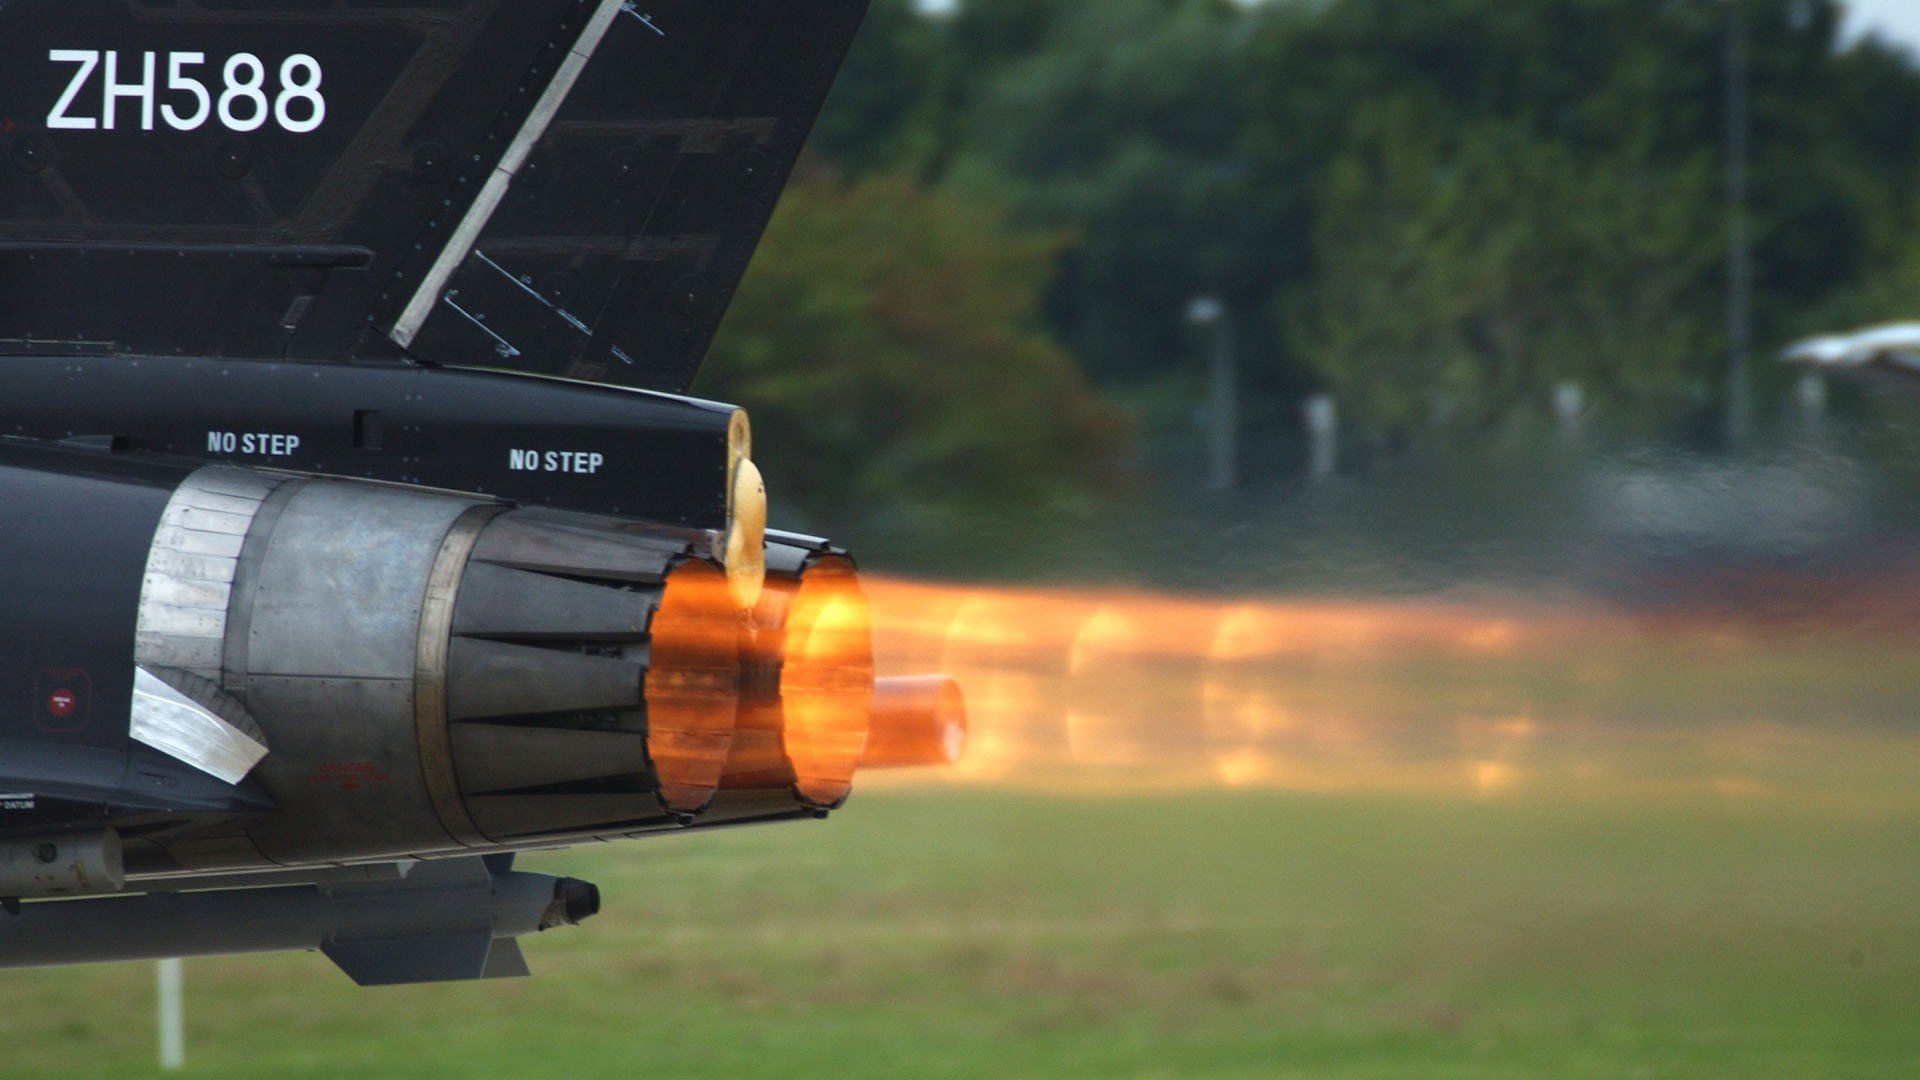 Aircraft jets engine exhaust hd wallpapers desktop and mobile images photos - Jet engine wallpaper ...